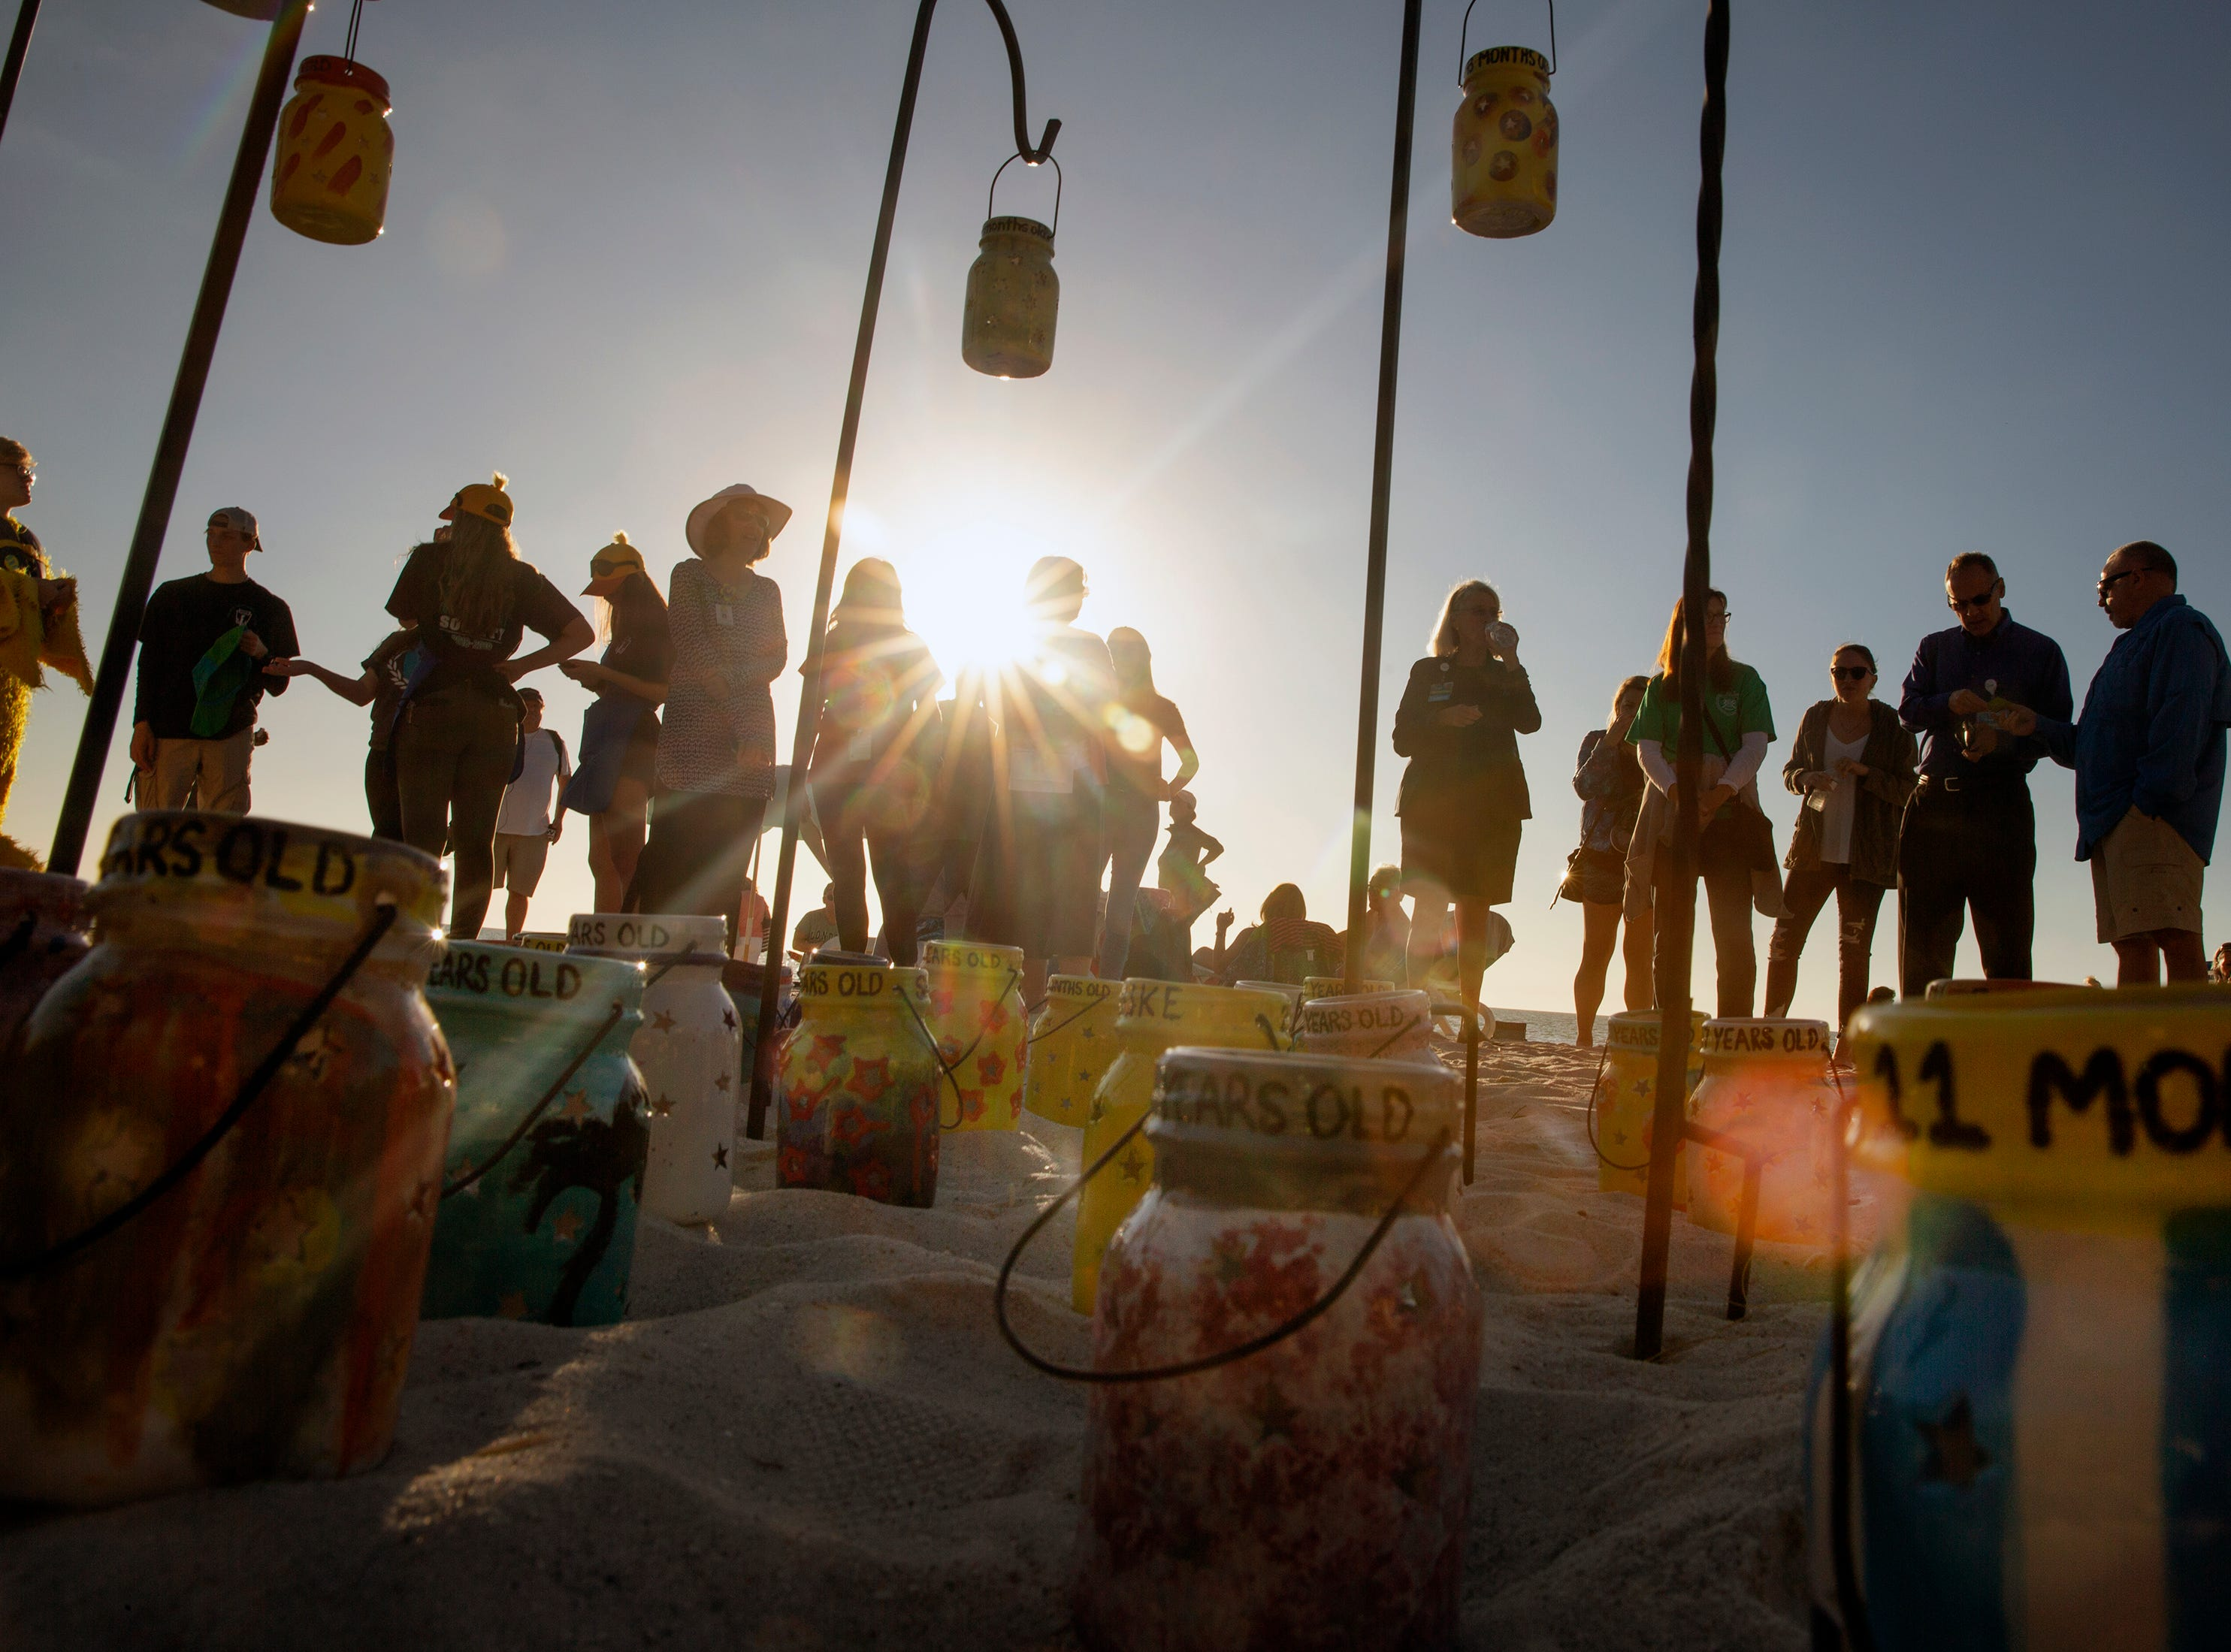 Community members gather around lanterns to honor local children who have died due to drowning during the 6th Annual Twin Tot Walk Vigil, Friday, Jan. 11, 2019 at Vanderbilt Beach.